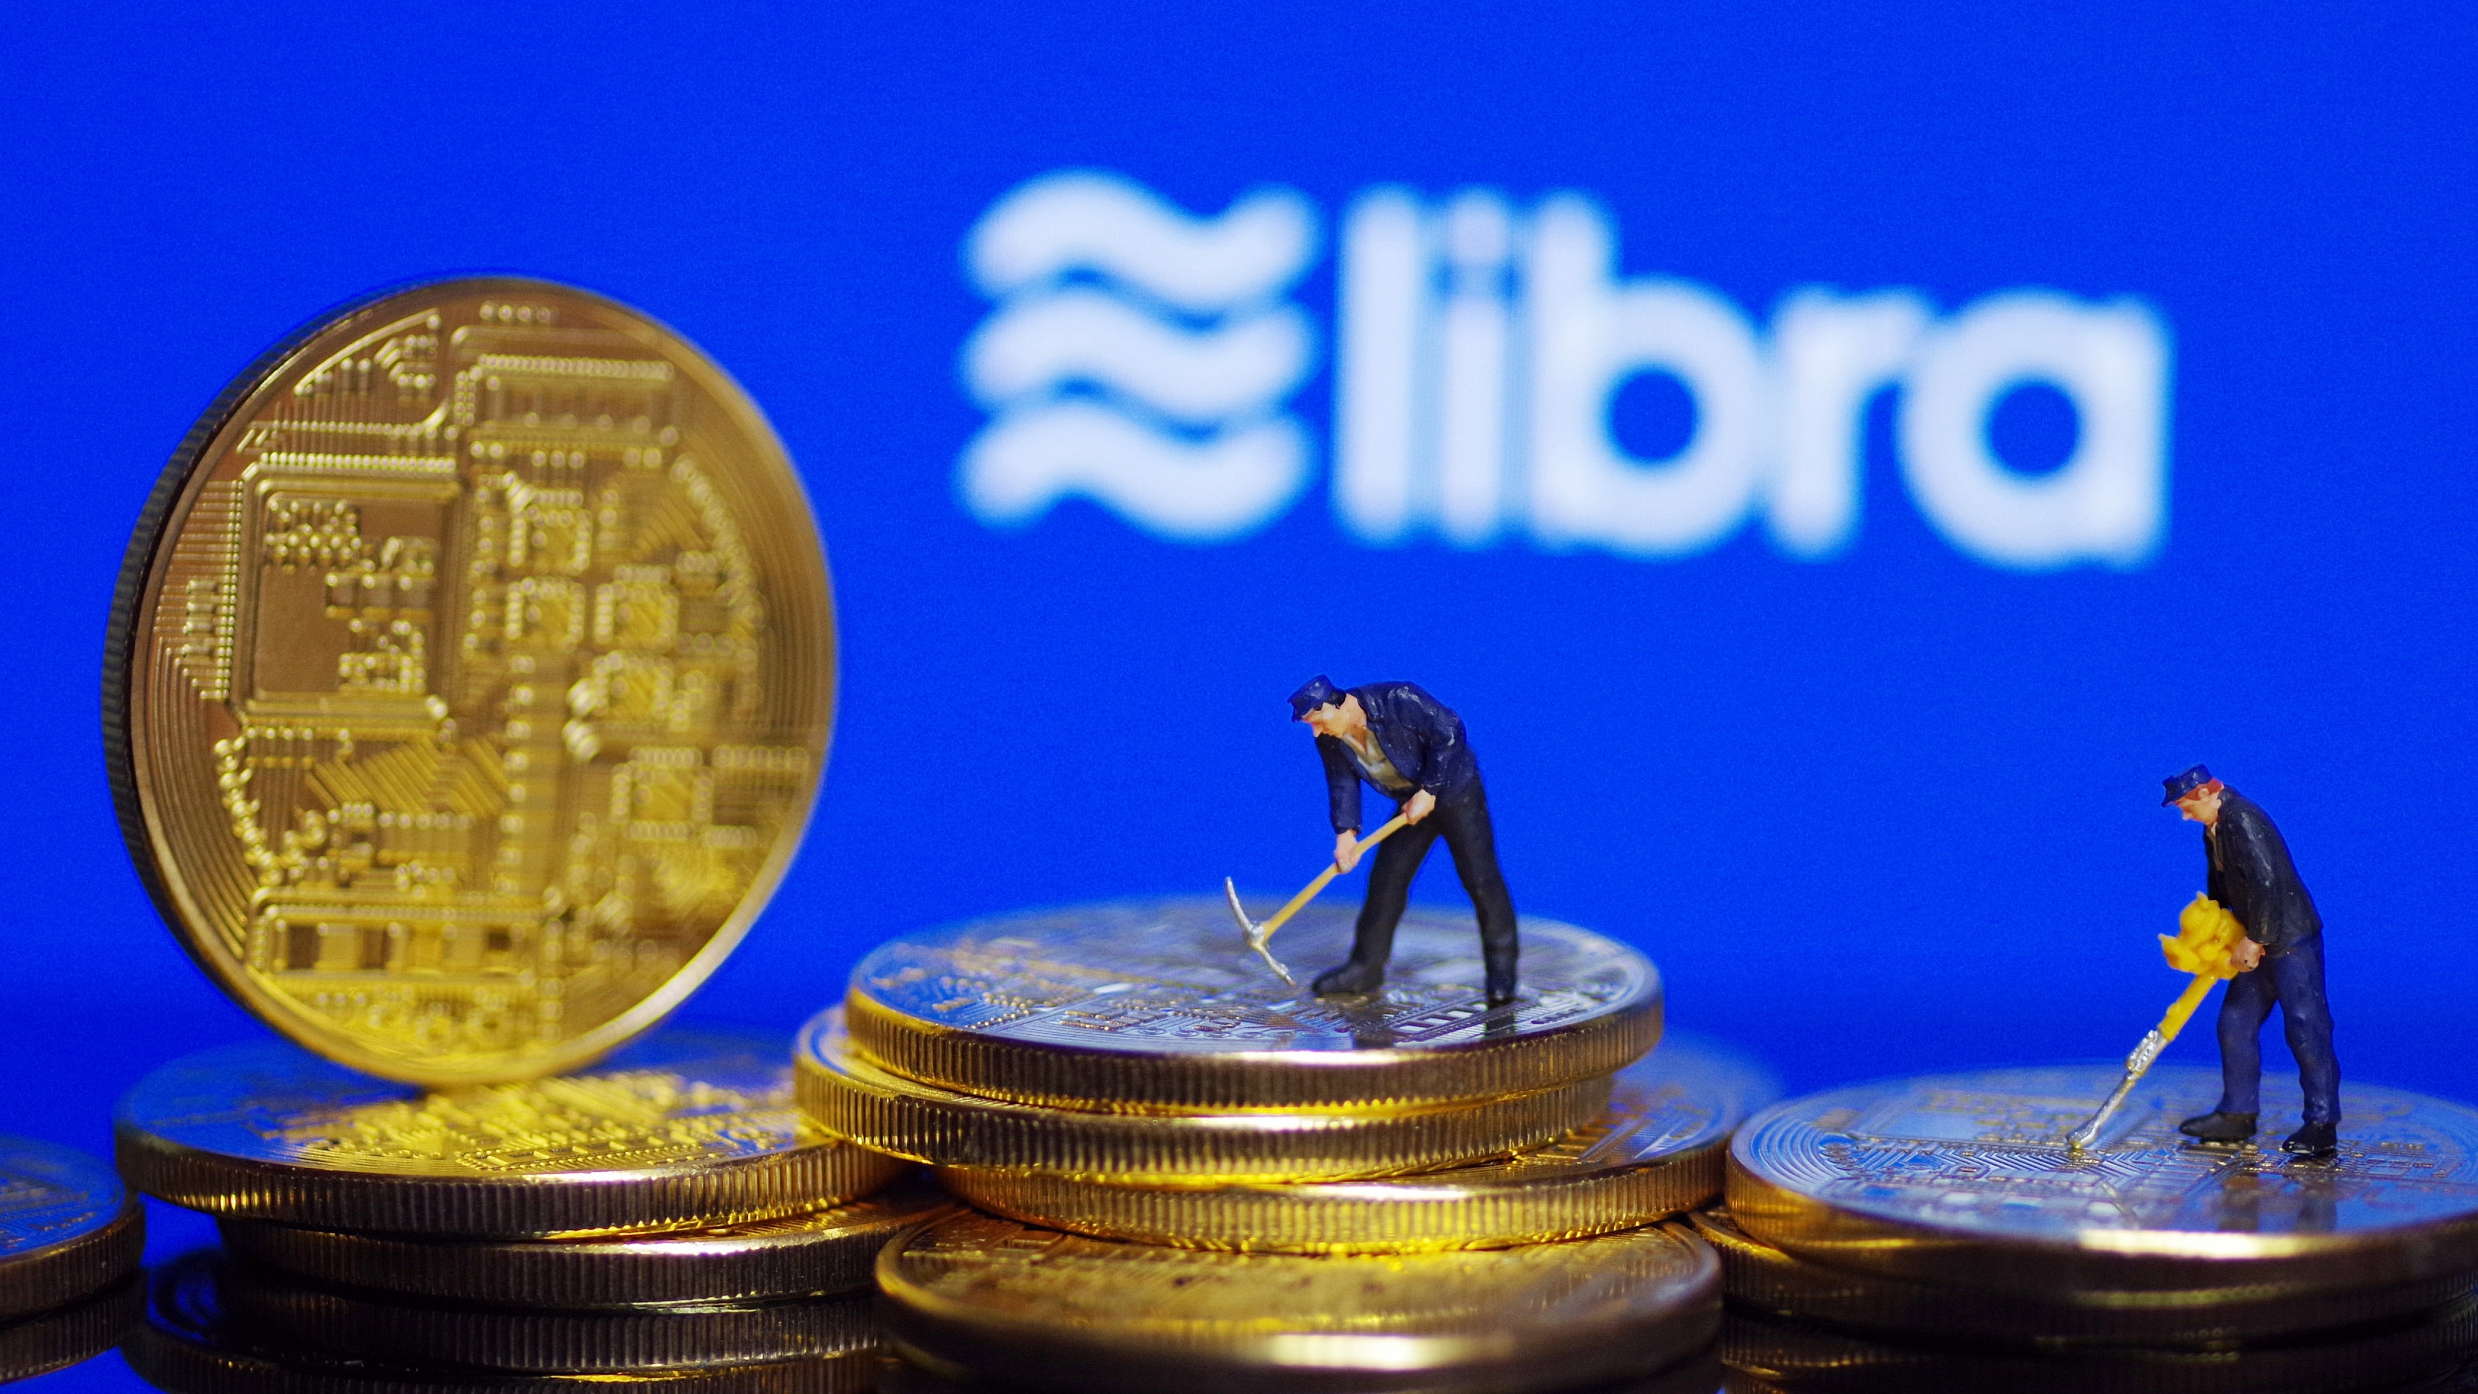 Bitcoin soars past $13,000 as Facebook's Libra fuels demand - CGTN